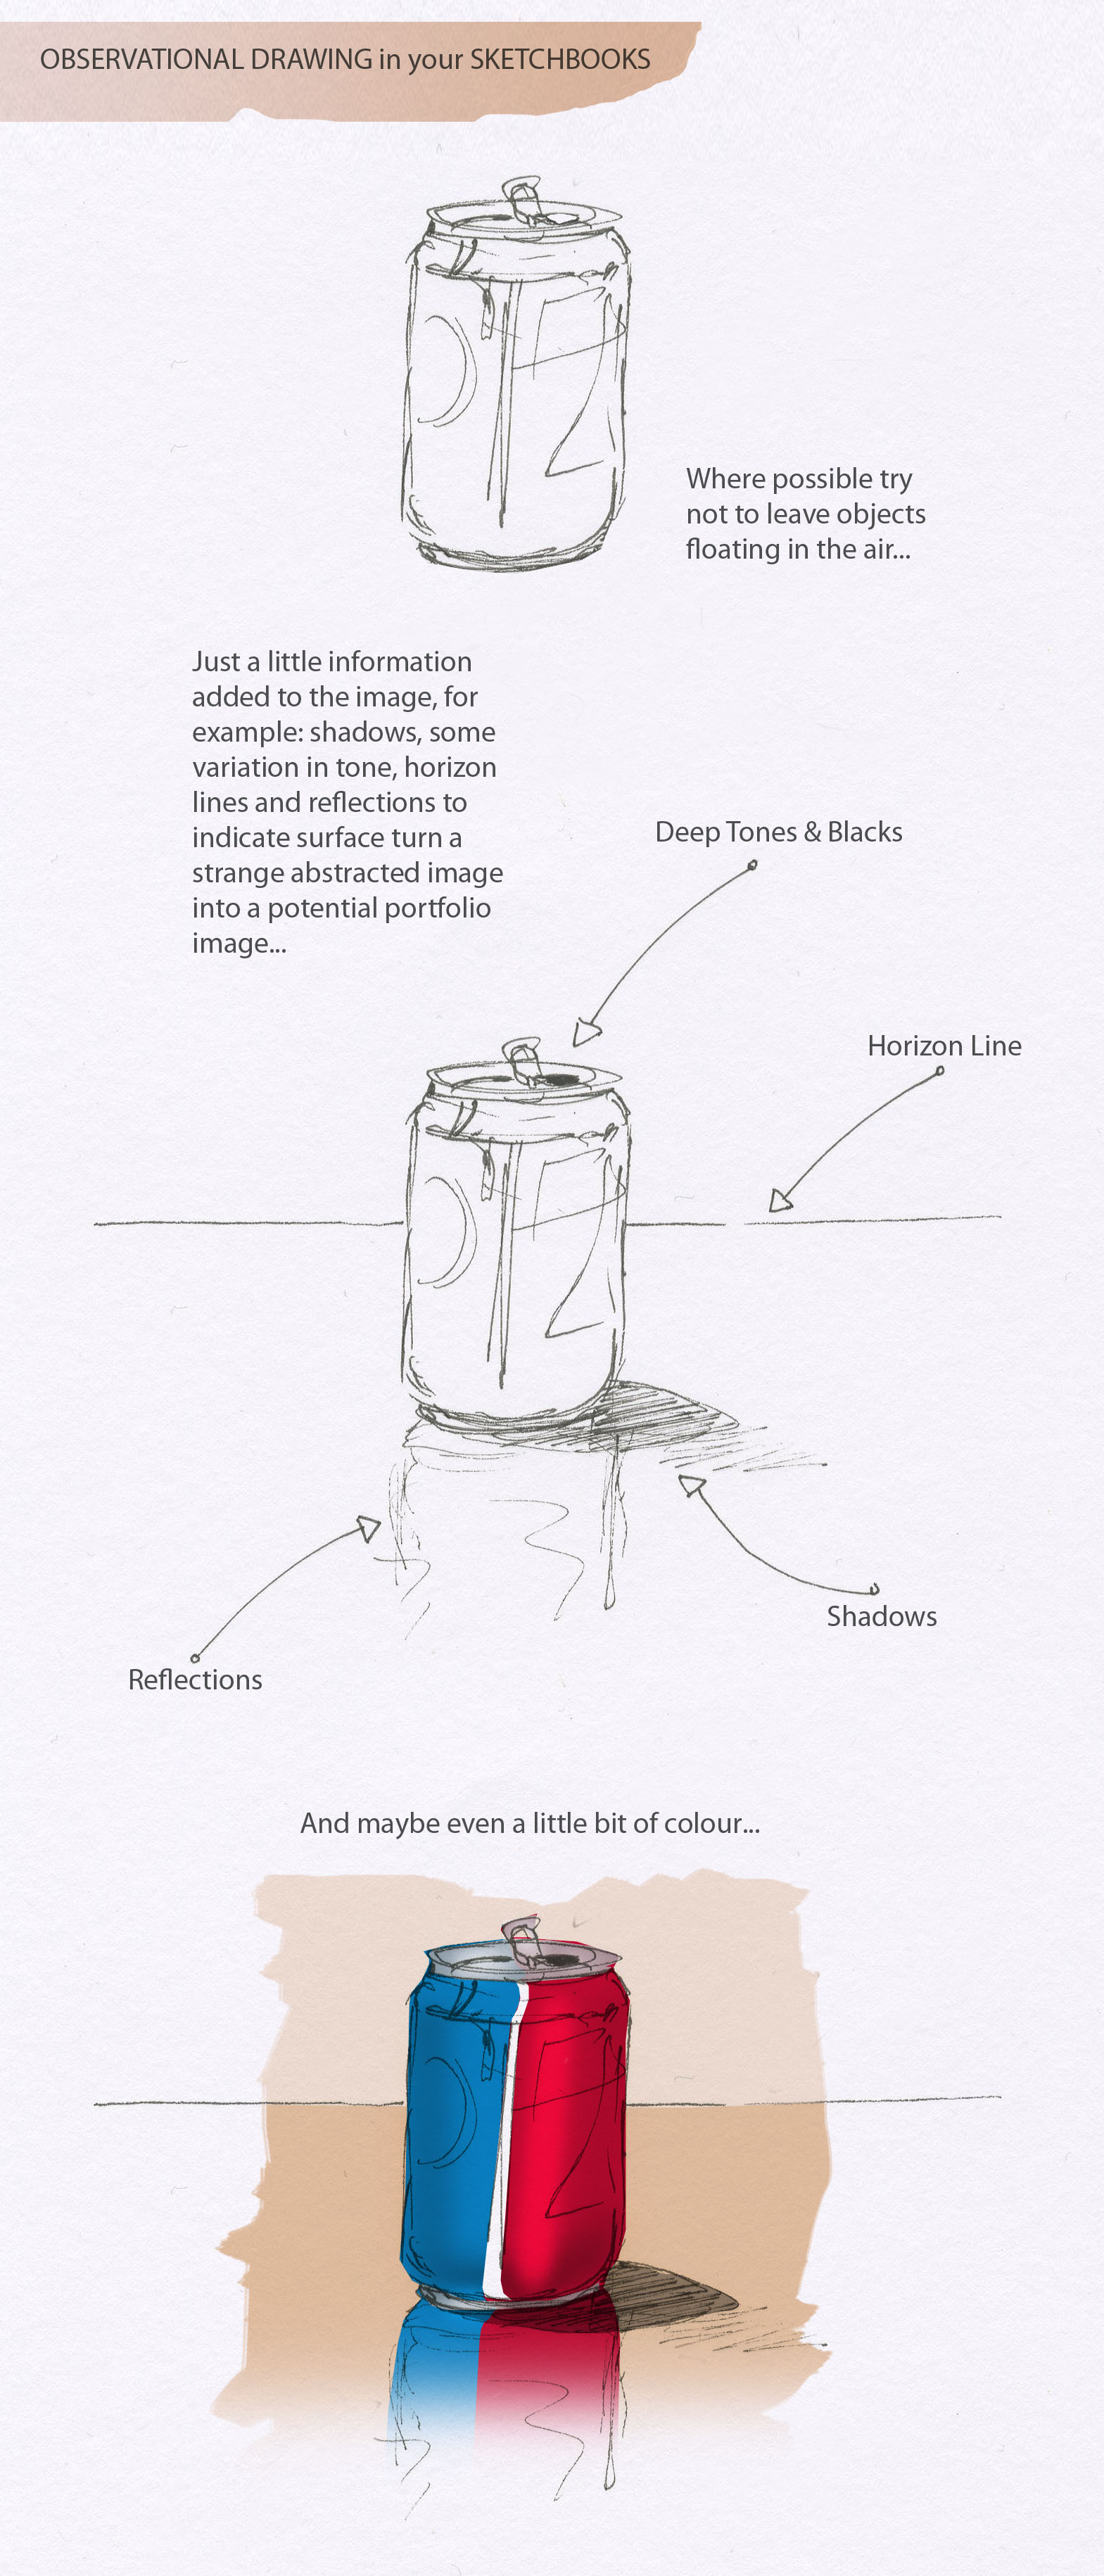 Techniques for observational drawings?